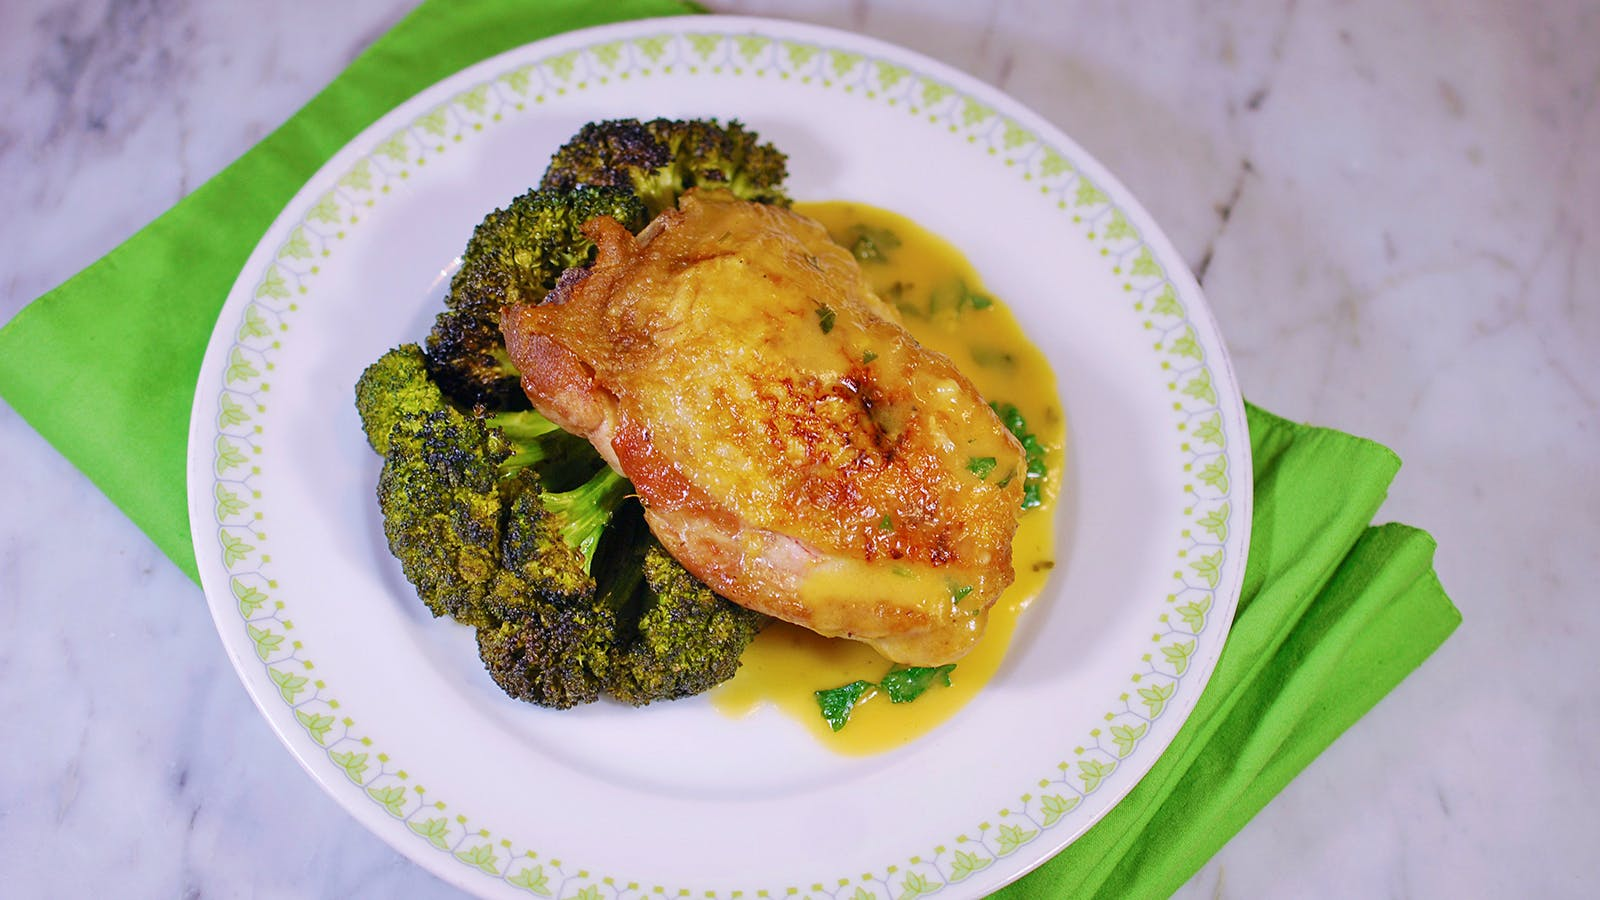 8 & $20: Roasted Chicken Thighs With Broccoli